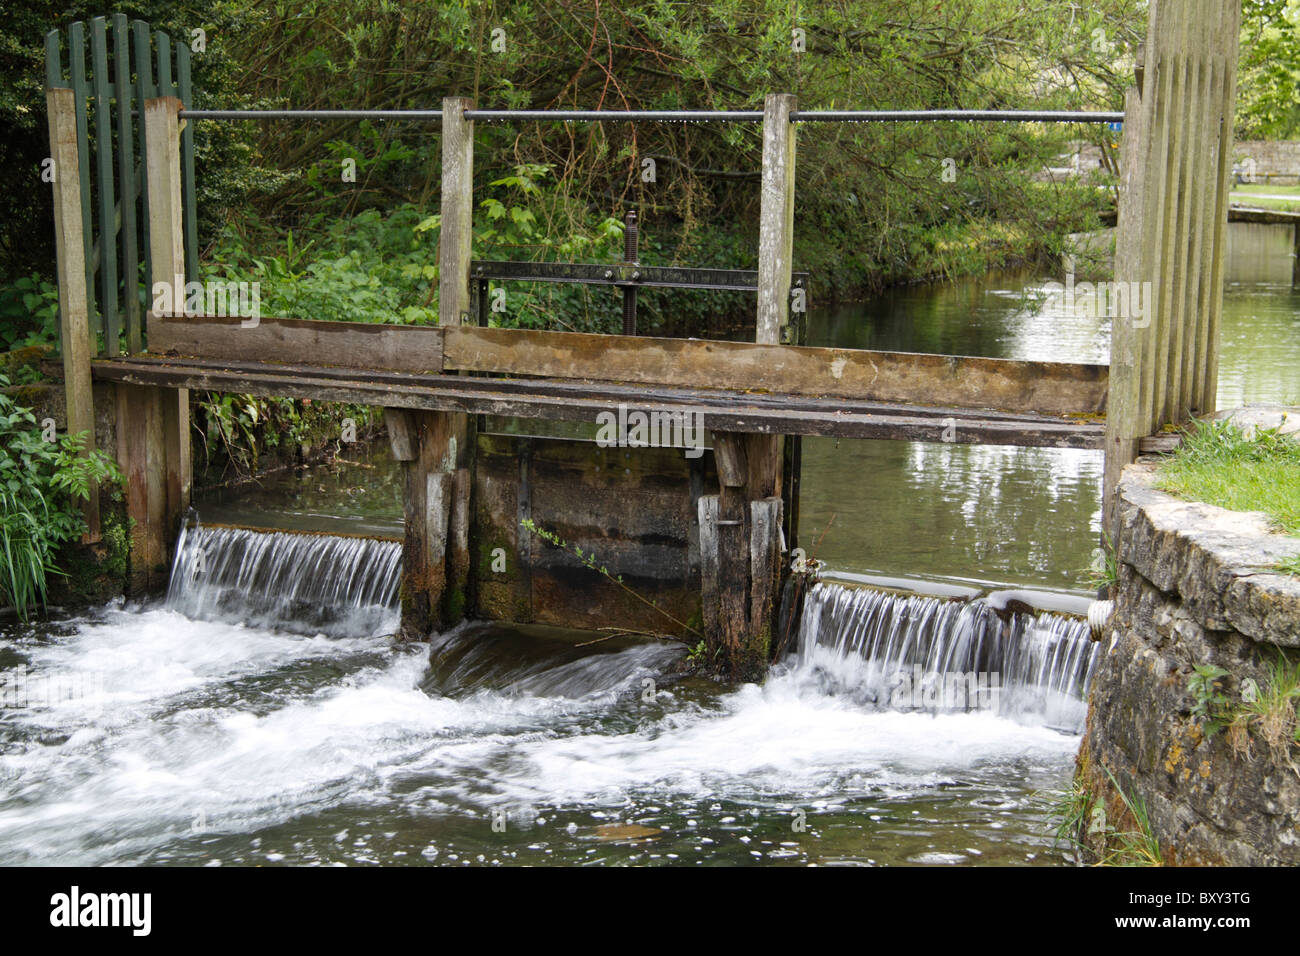 Sluice Gate - Stock Image